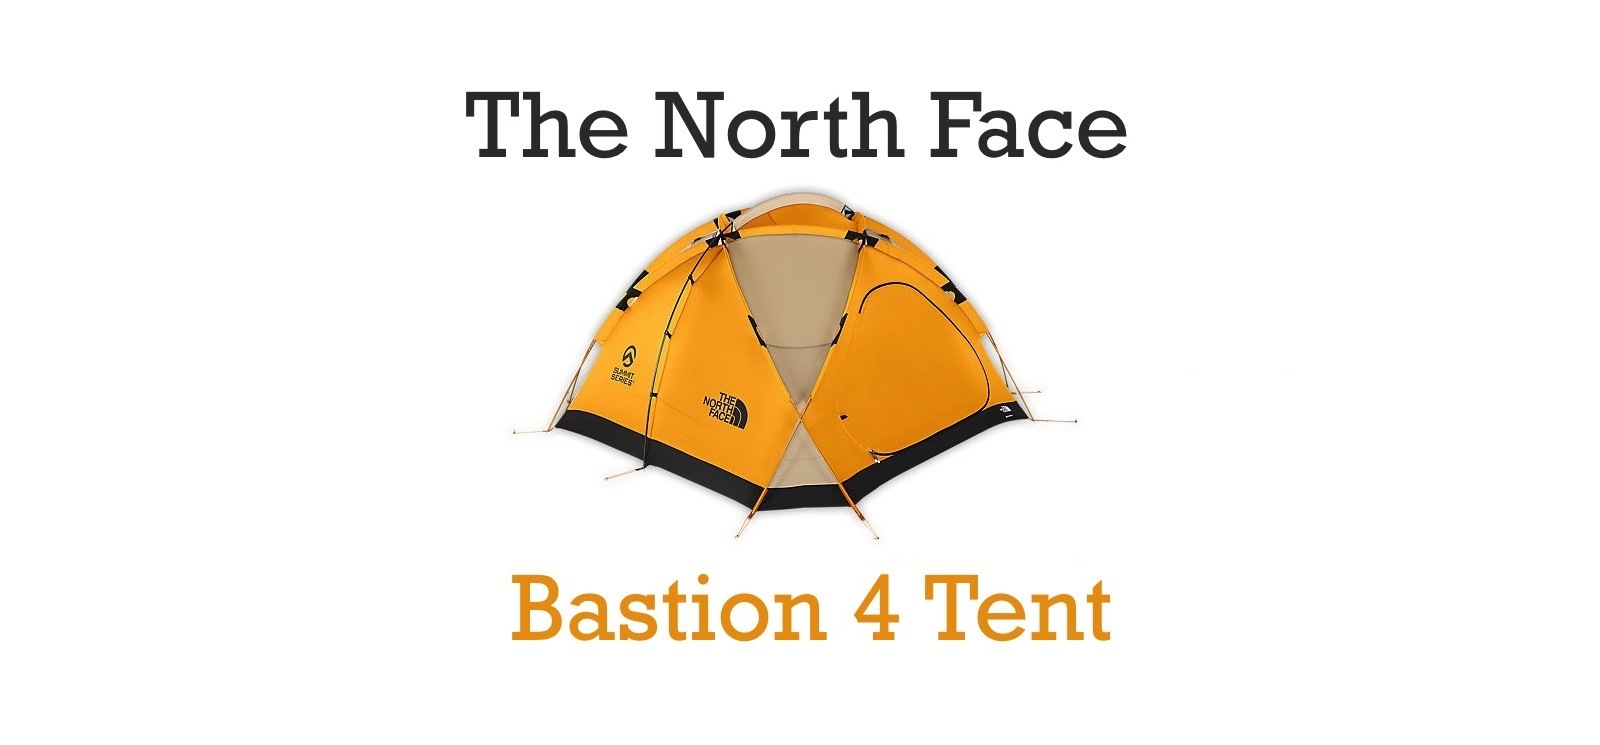 The North Face Bastion 4 Tent